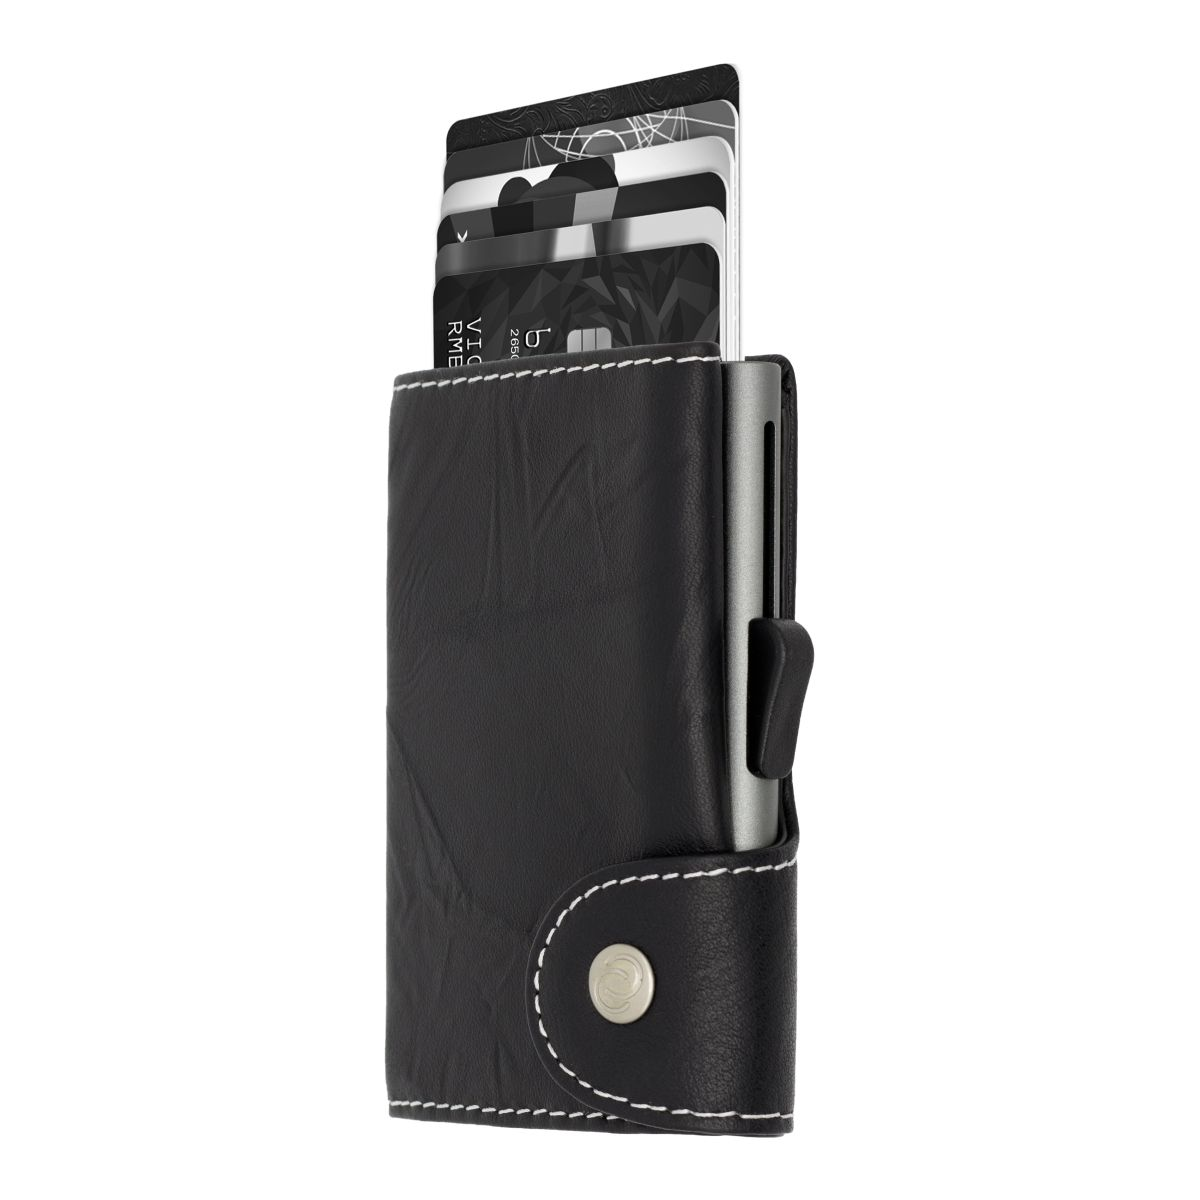 Aluminum Card Holder with Genuine Leather - Black / Titanium